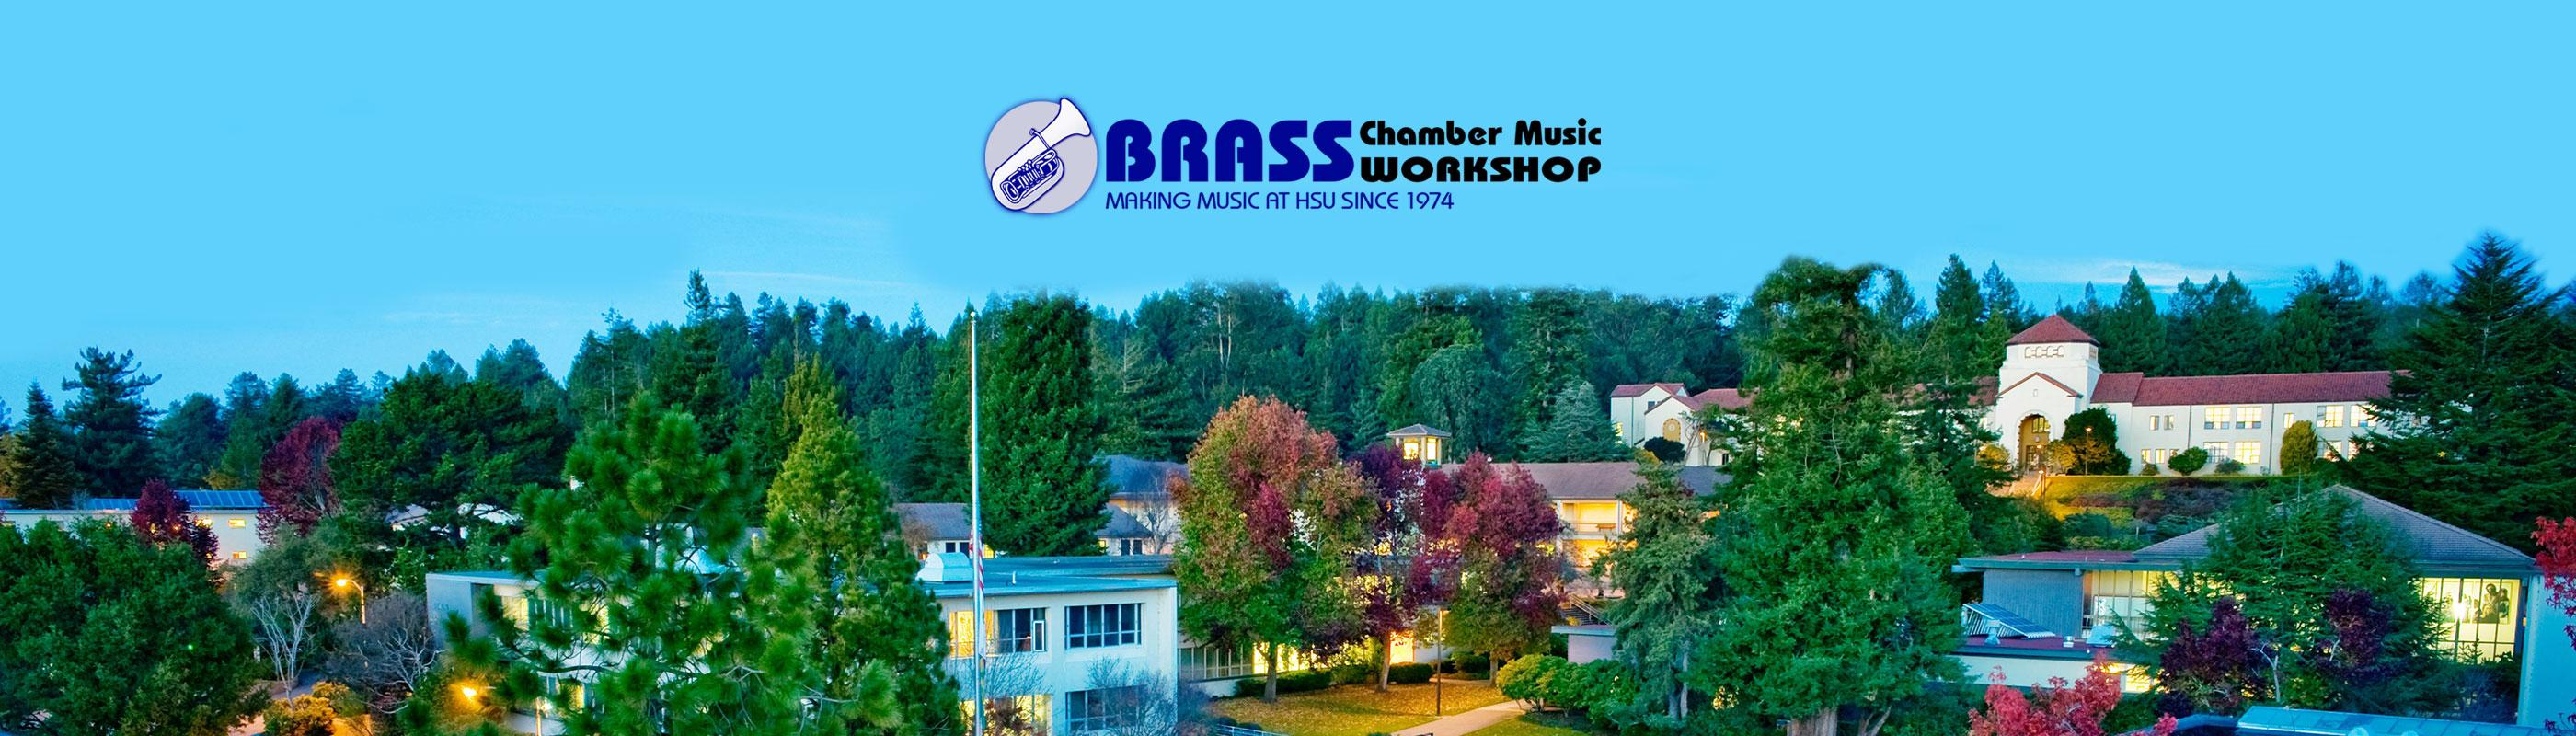 Brass Chamber Music Workshop